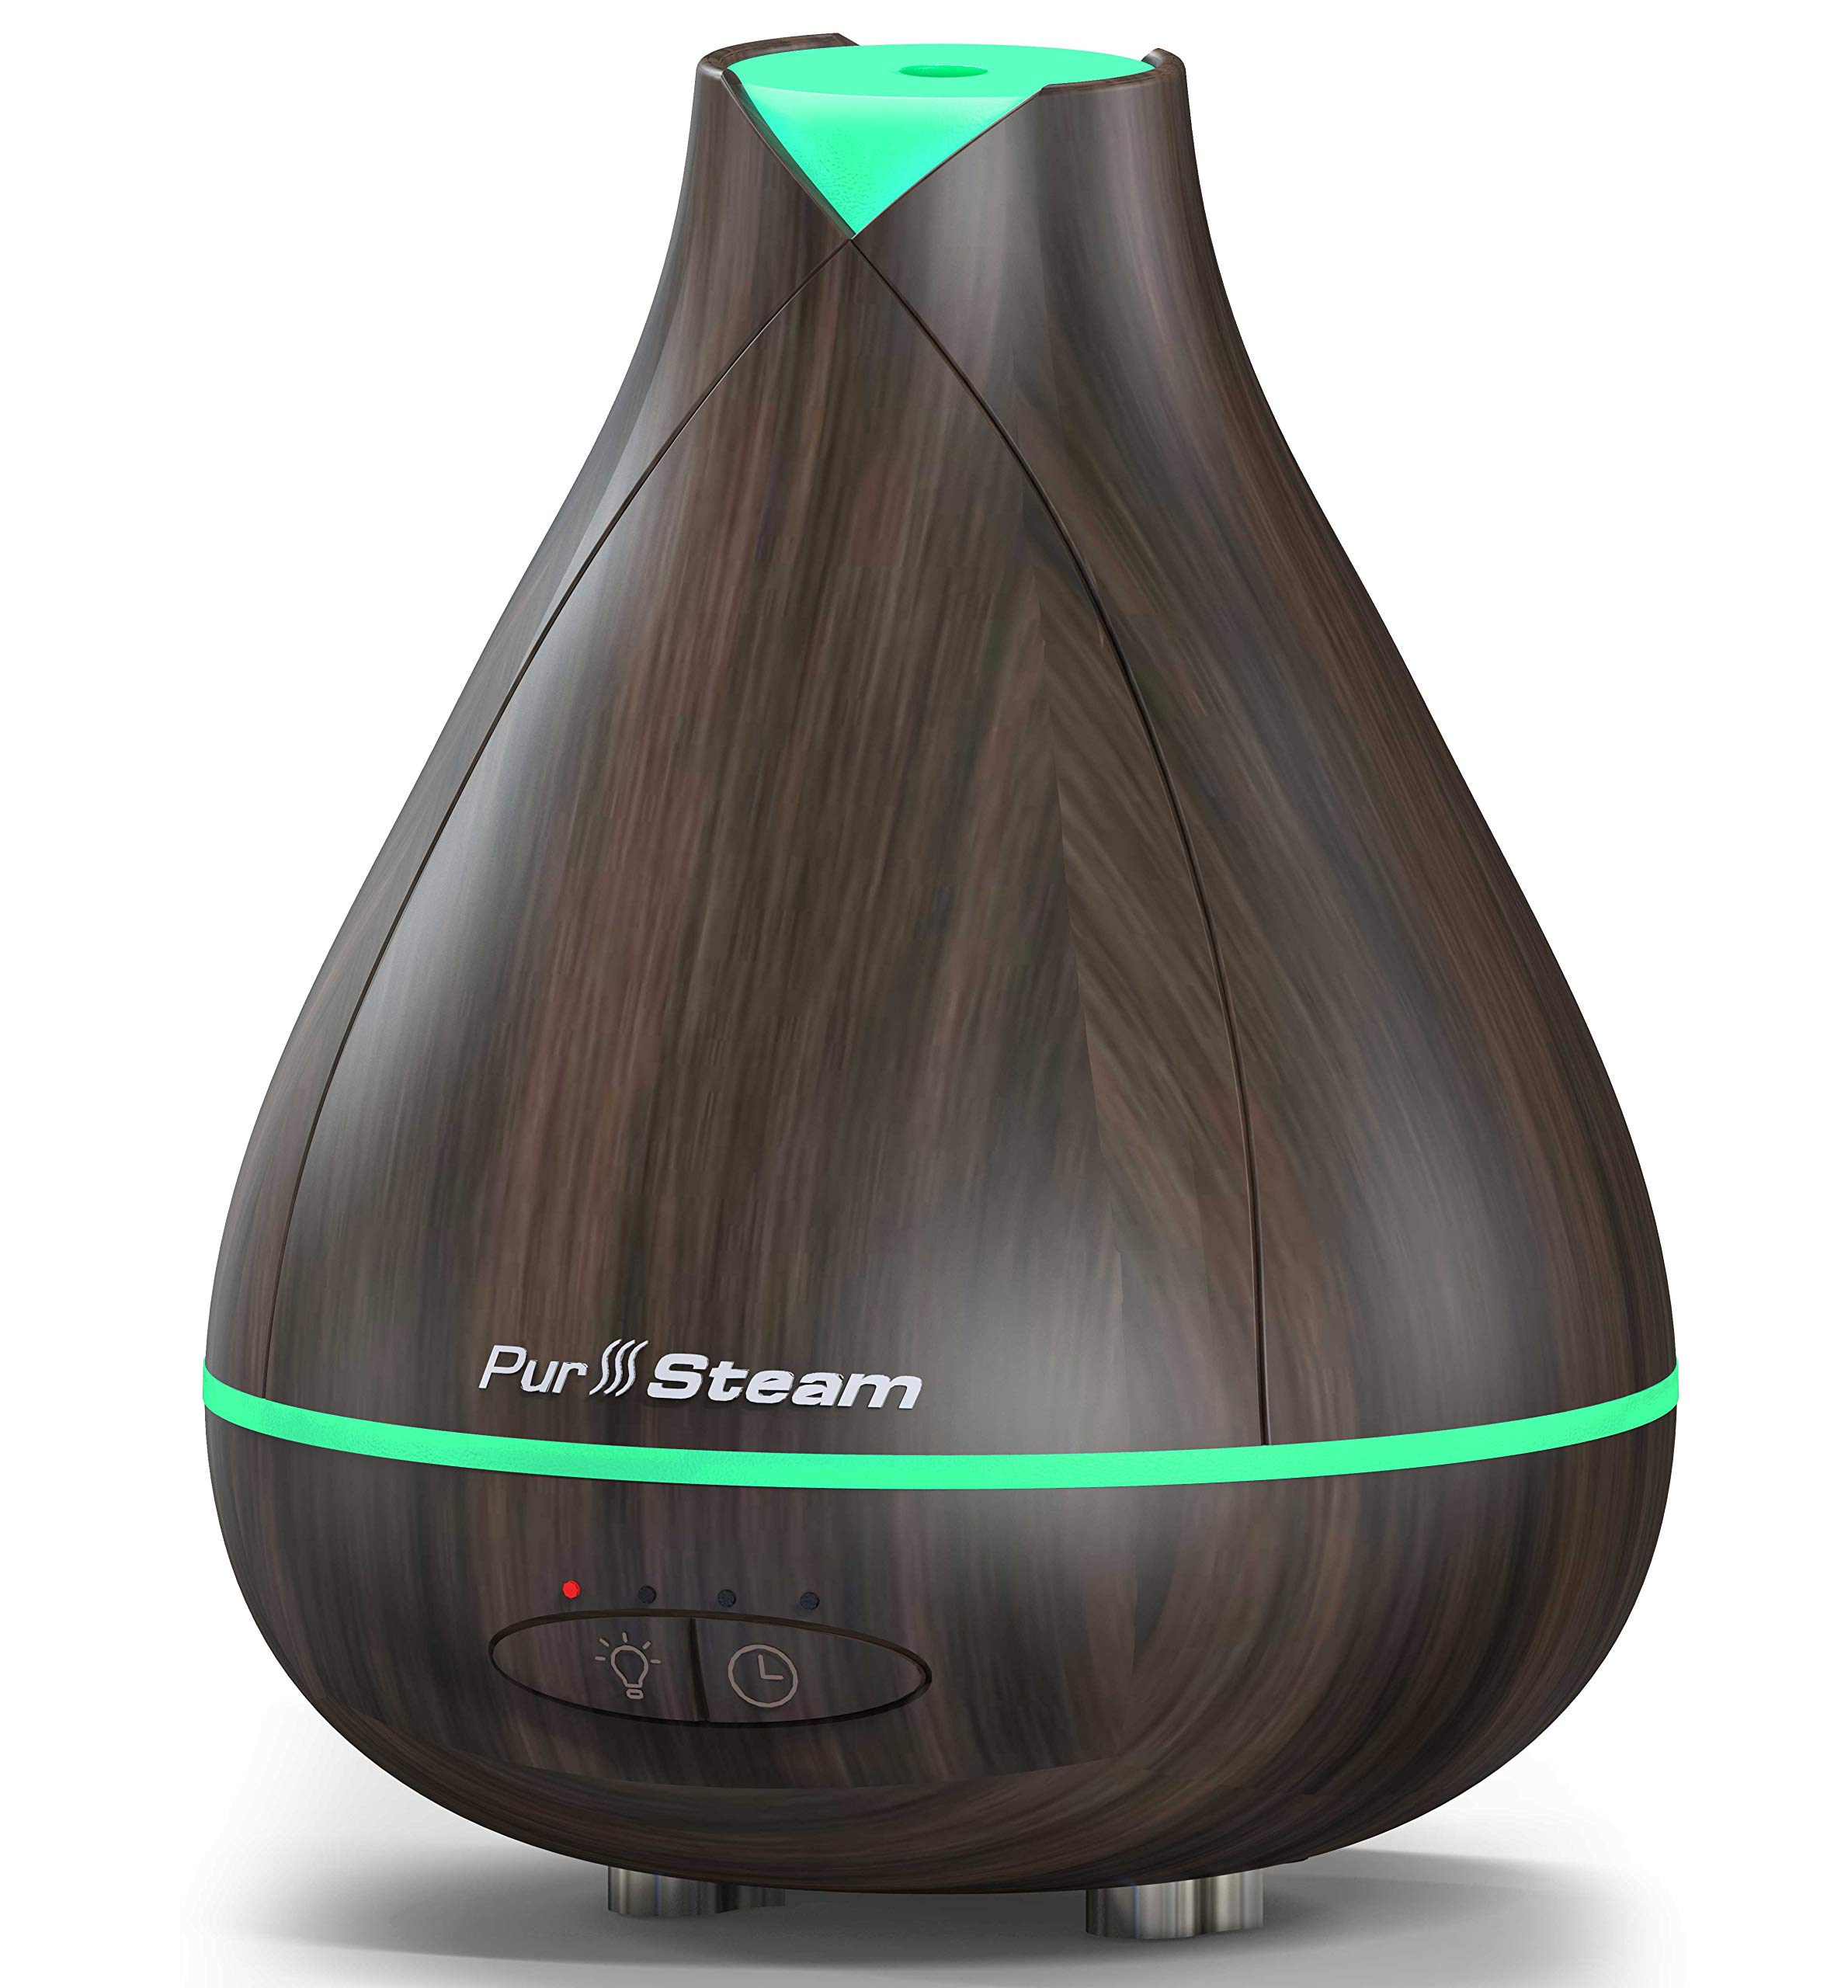 PurSteam 530ml Essential Oil Diffuser, Noise Reduce Design - Quieter, Longer Mist Output, 8-15 Hours Ultrasonic Aroma Diffuser with Waterless Auto-off, 7-Color LED Soft Light for Home, Office, Yoga by PurSteam World's Best Steamers